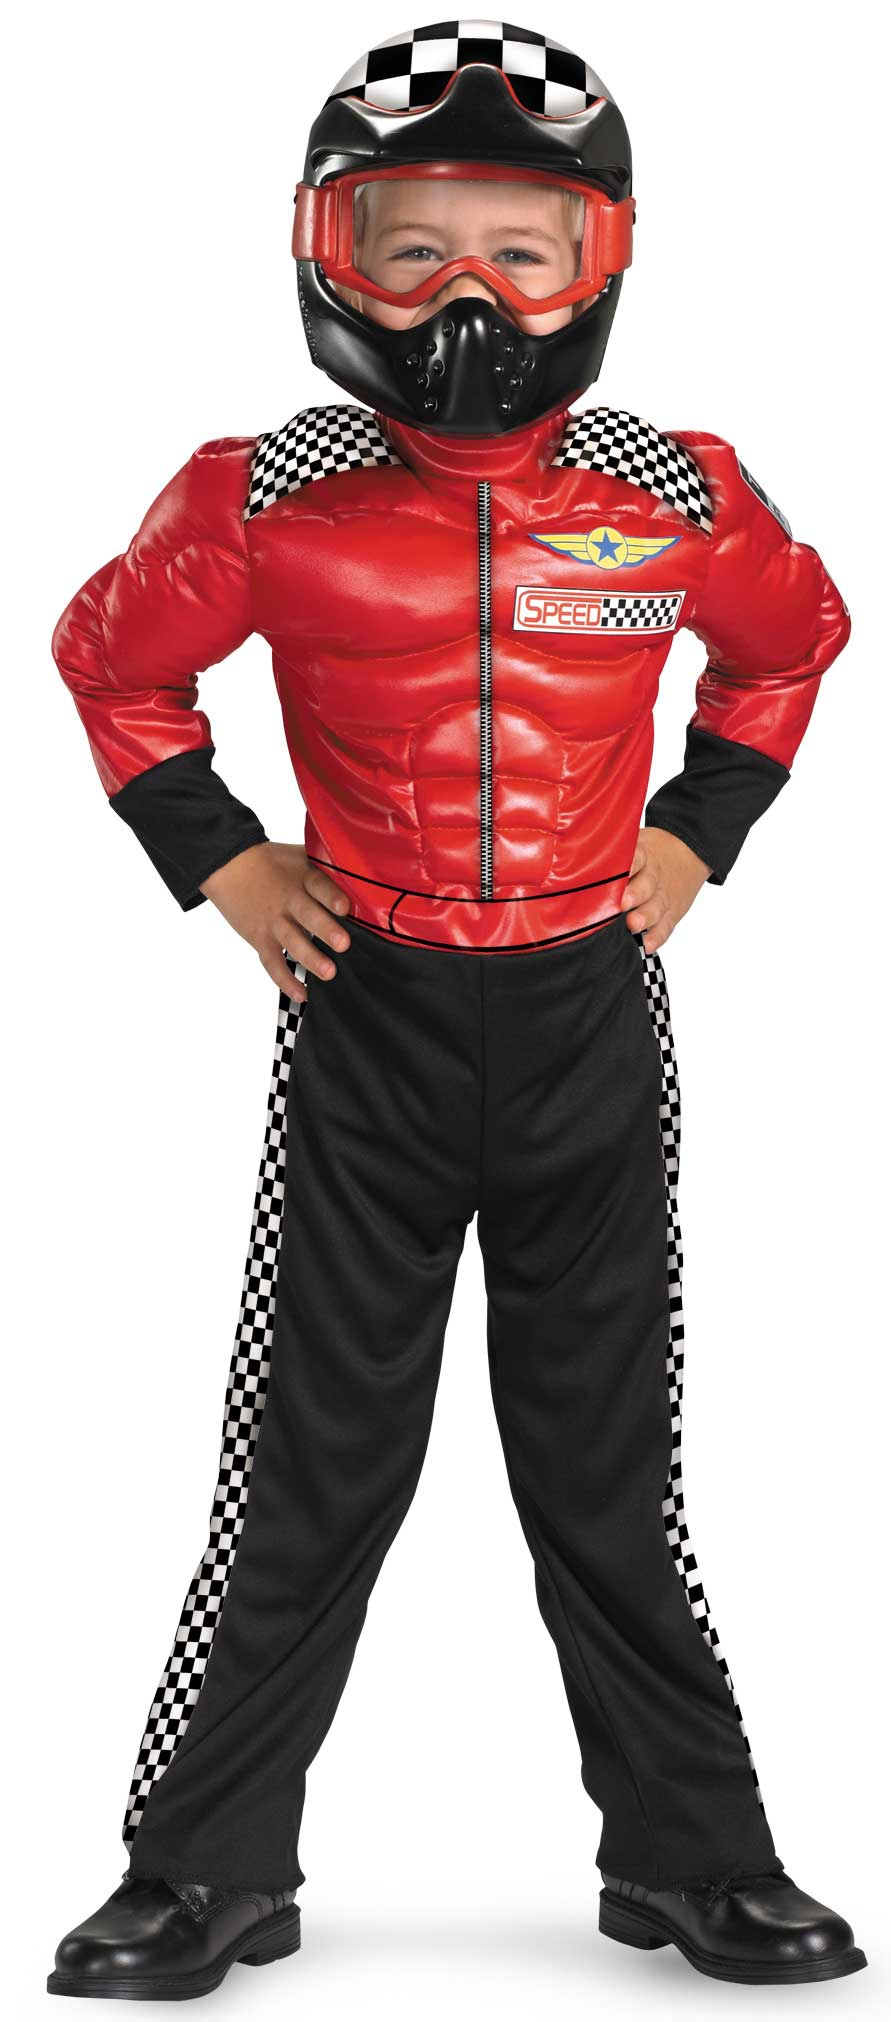 Race Car Driver Costume Ideas and Tips. Race car driving is a serious business. You need to have quick reflexes and nerves of steel. But there is an easier way.